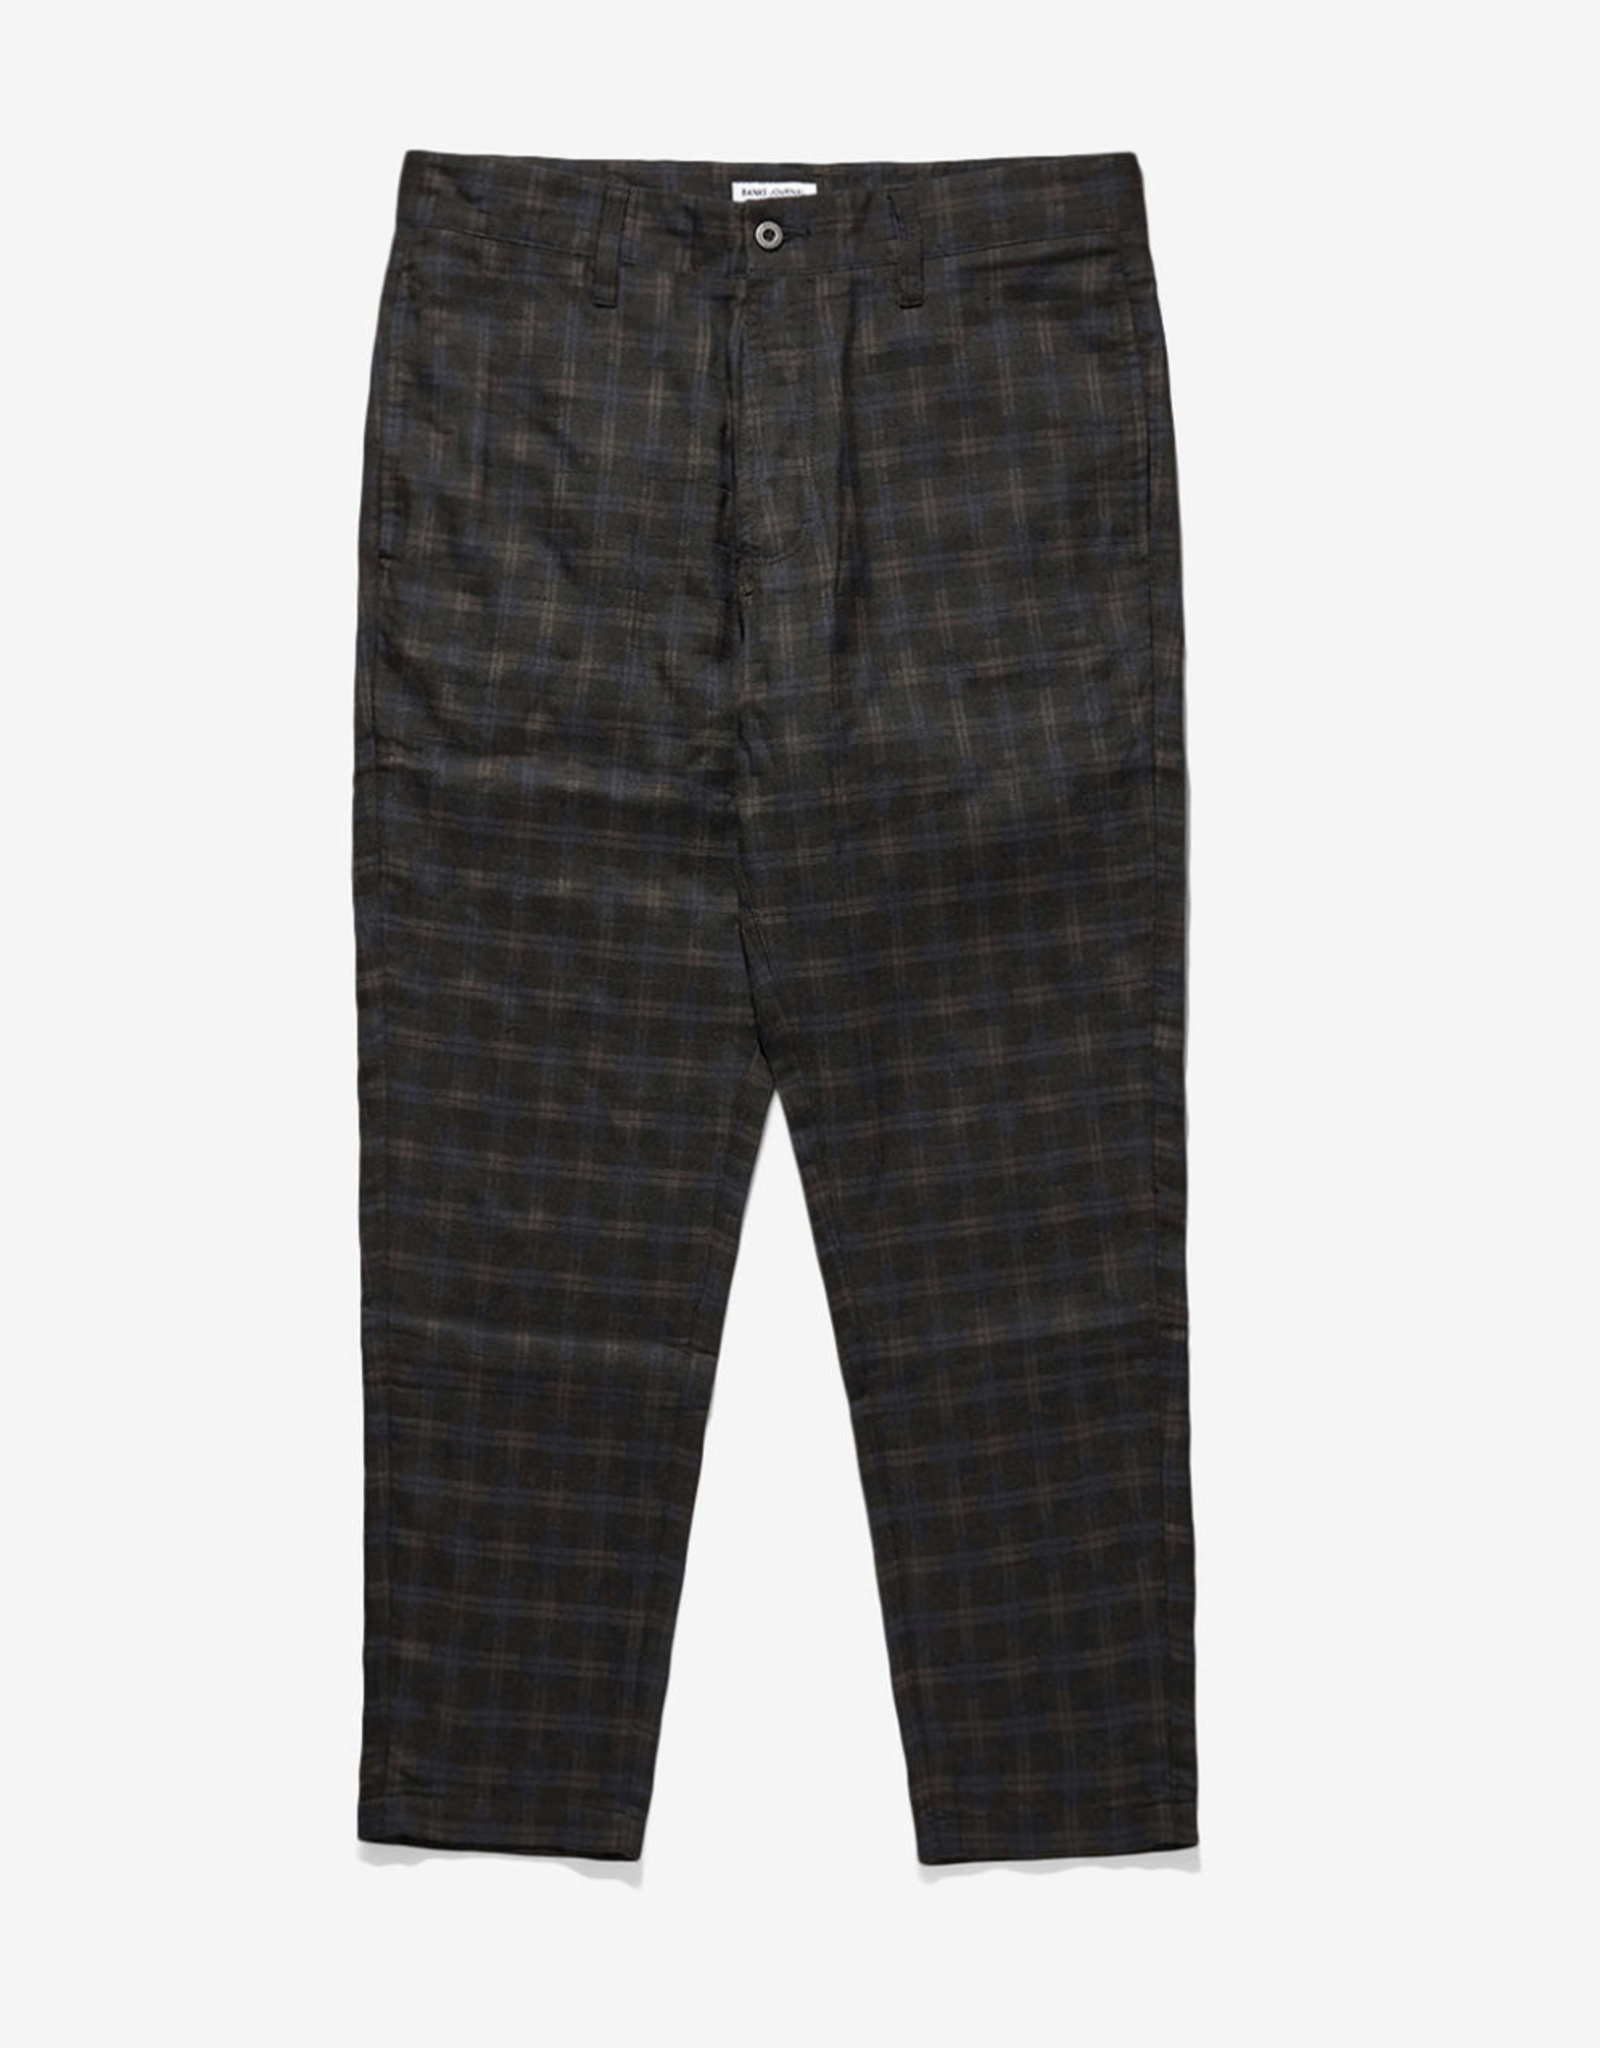 Downtown plaid pants